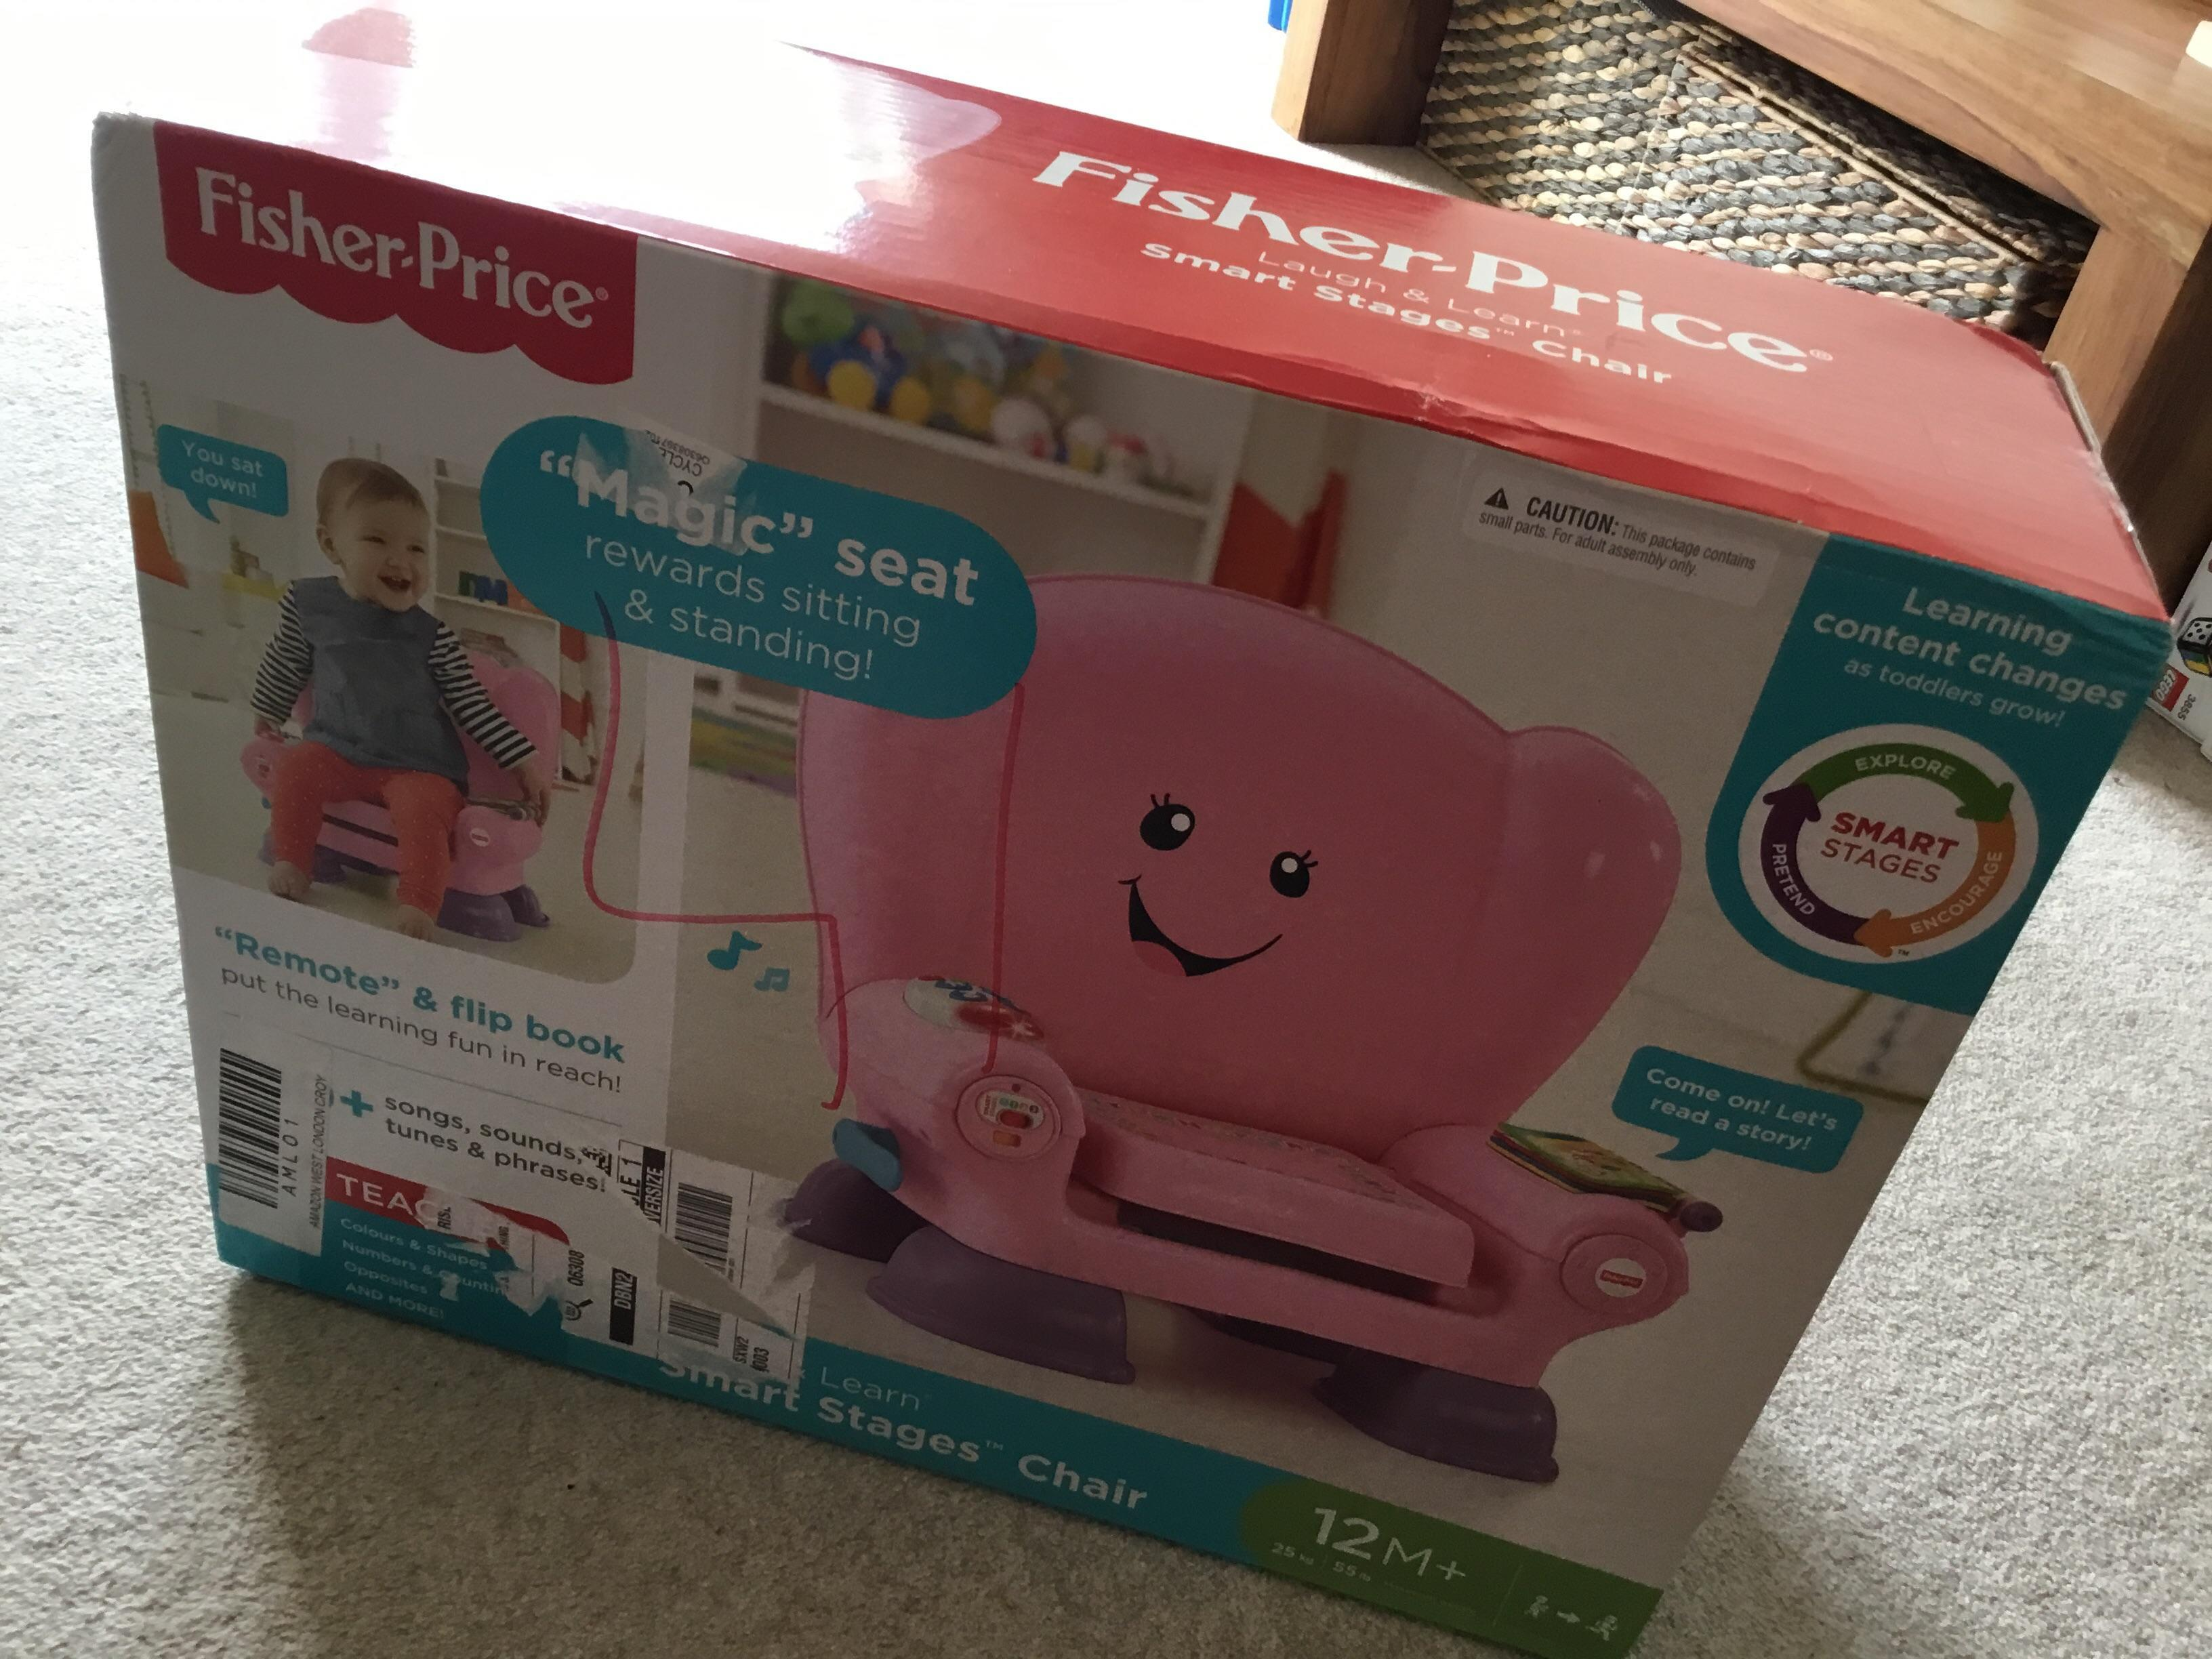 Fisher Price magic seat pink learning smart stage chair BN